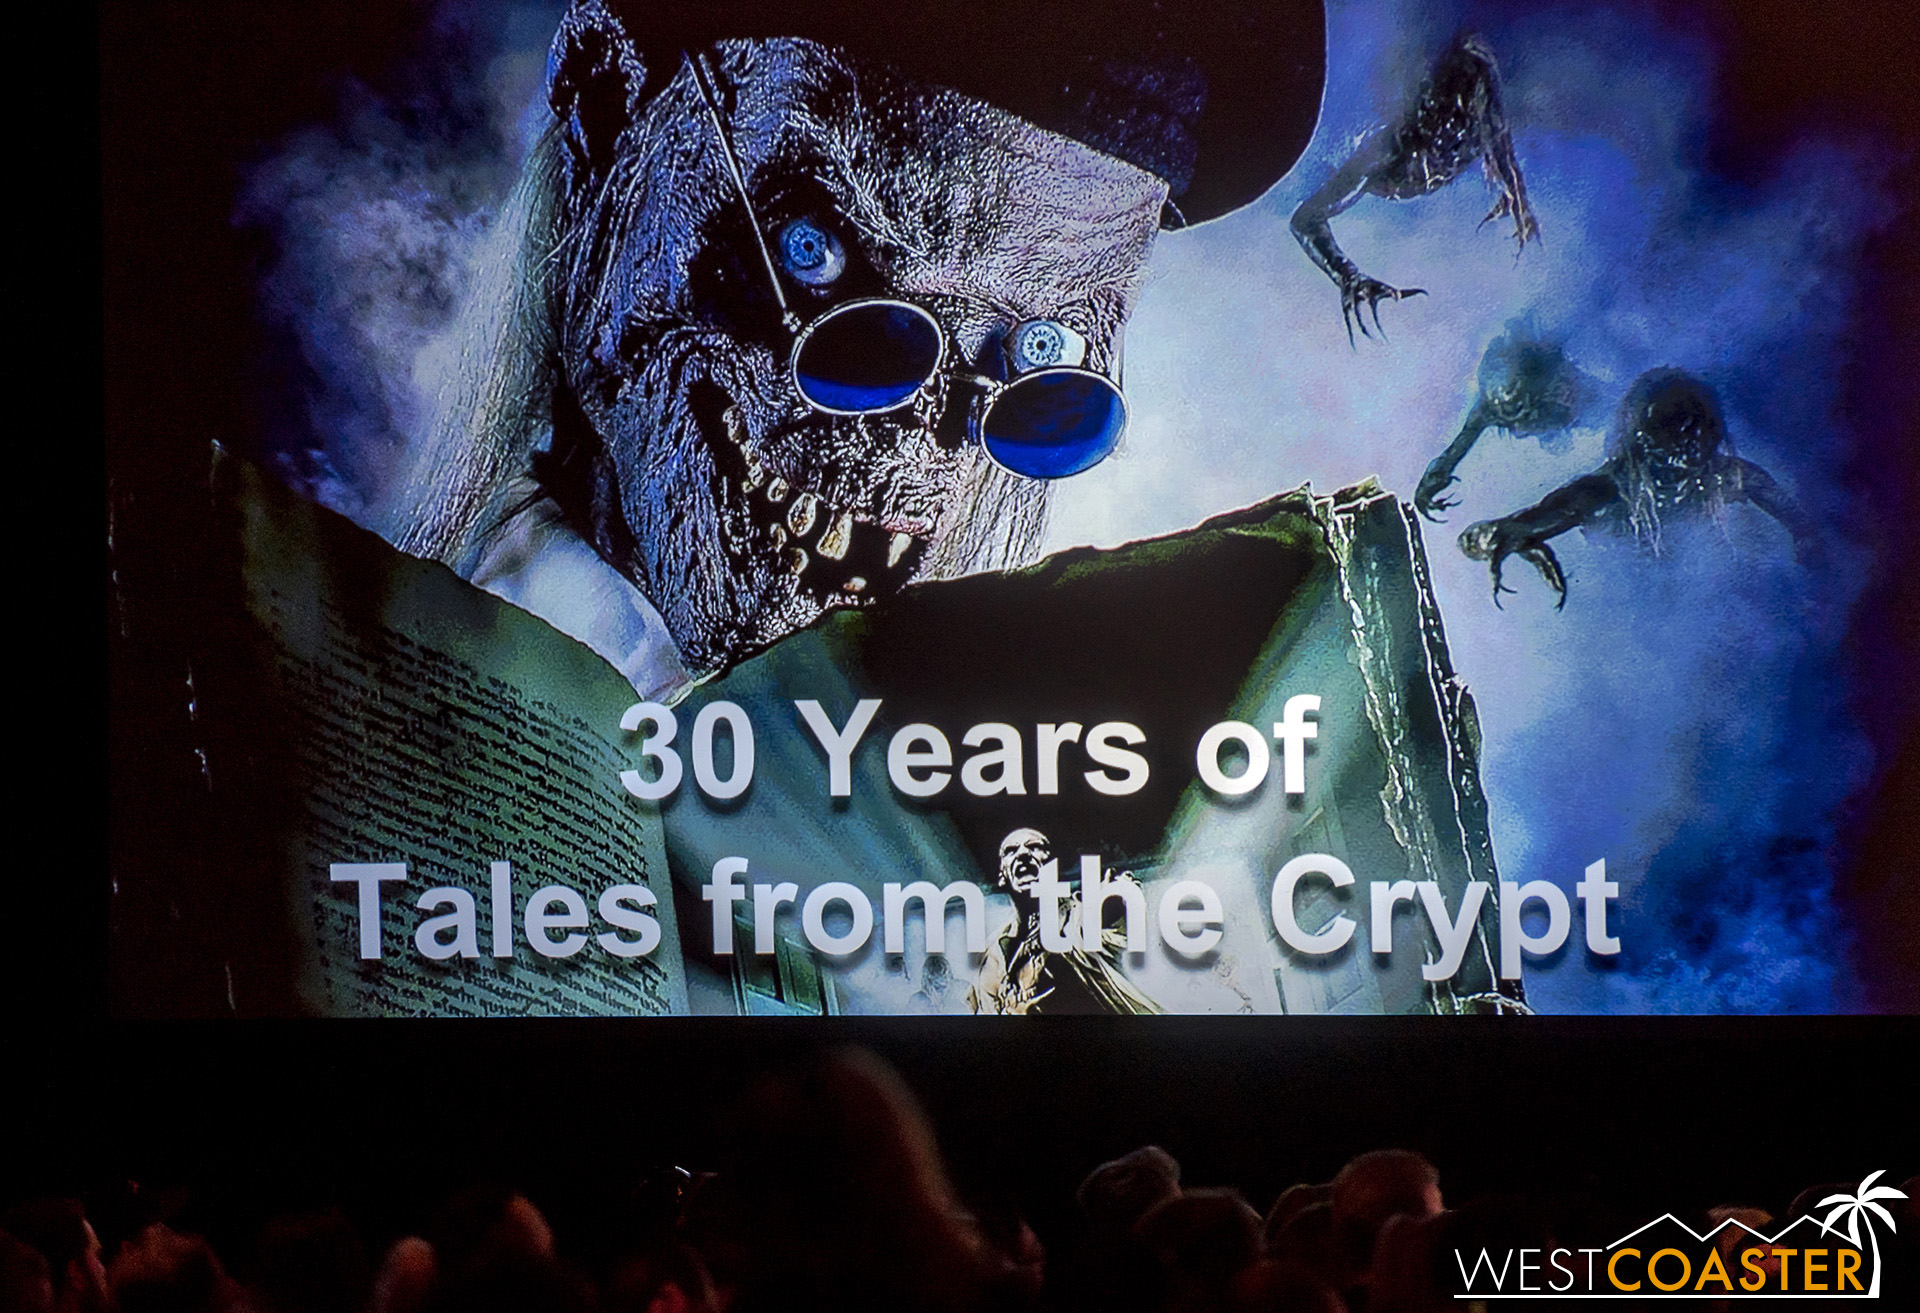 Tales from the Crypt  fans enjoyed a great hour-long discussion with the show's creators and principal players.